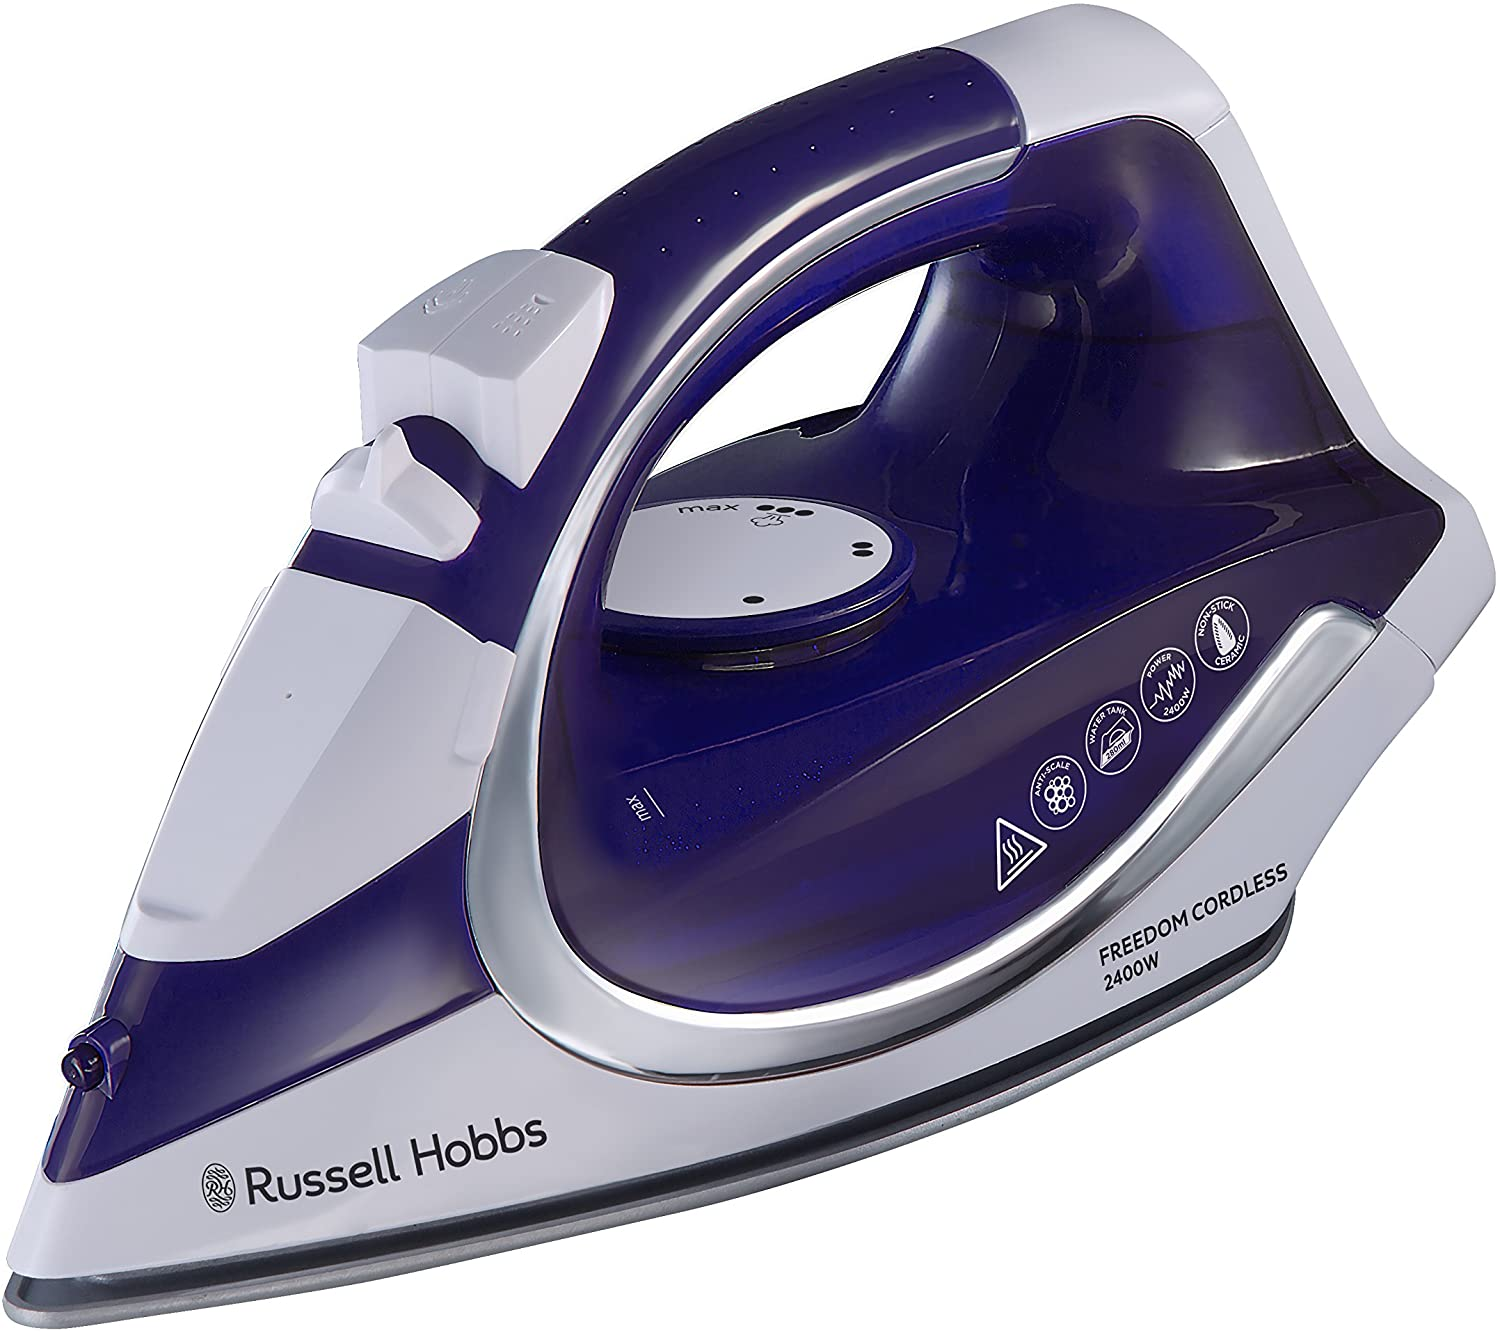 Russel Hobbs 23300 Freedom Cordless Iron – Large Water Tank